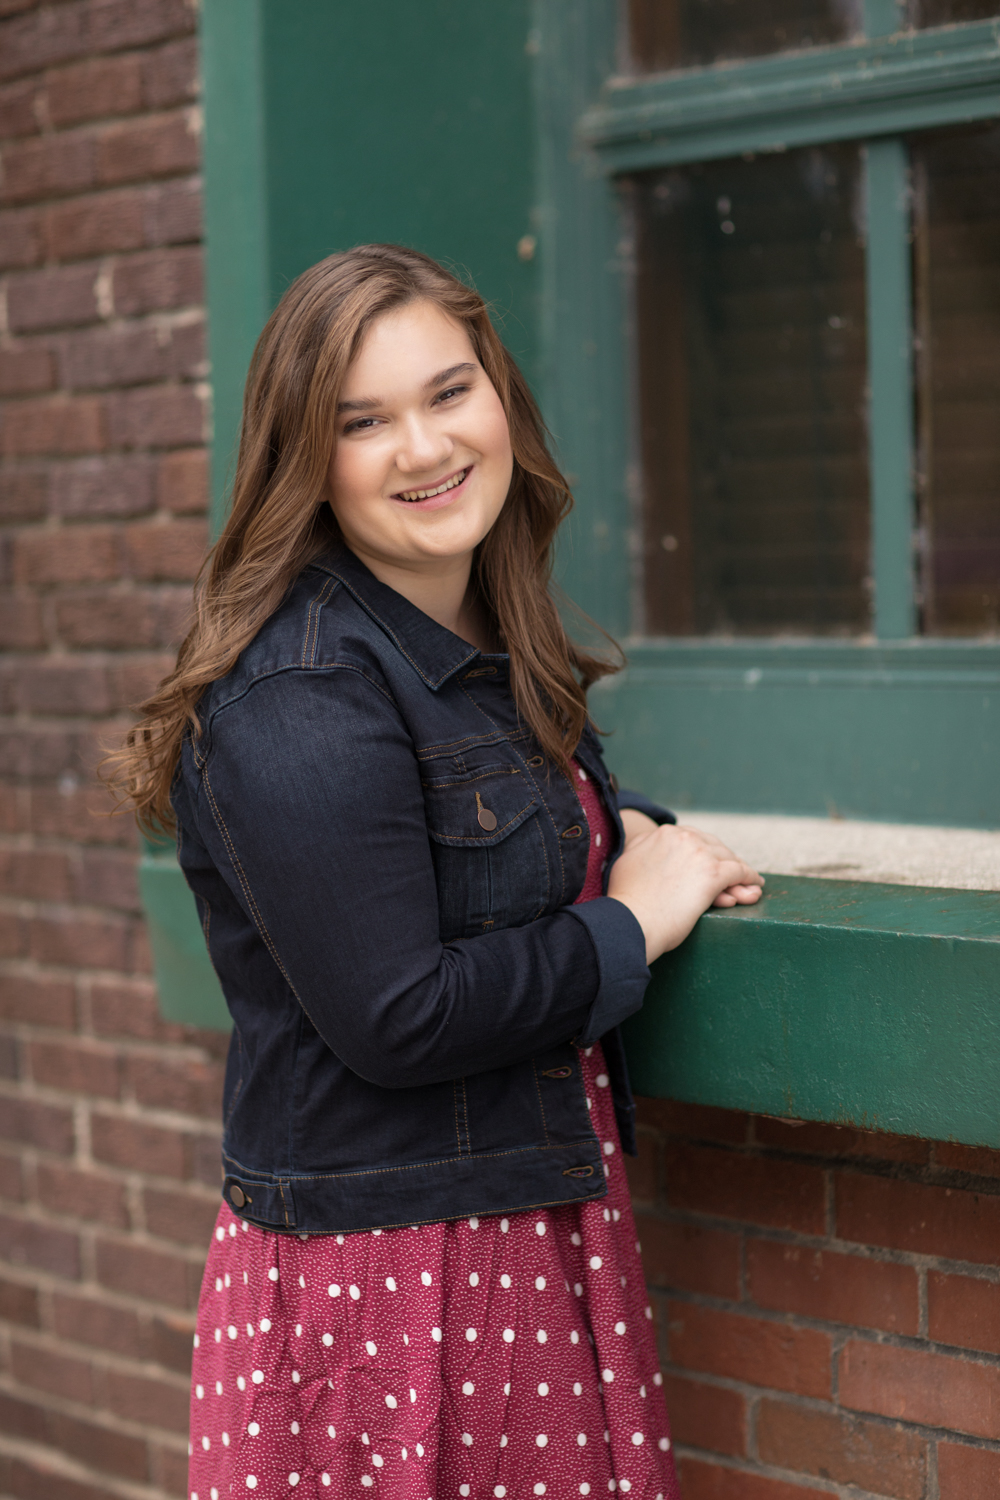 jill_hogan_senior_photography (7 of 17).jpg